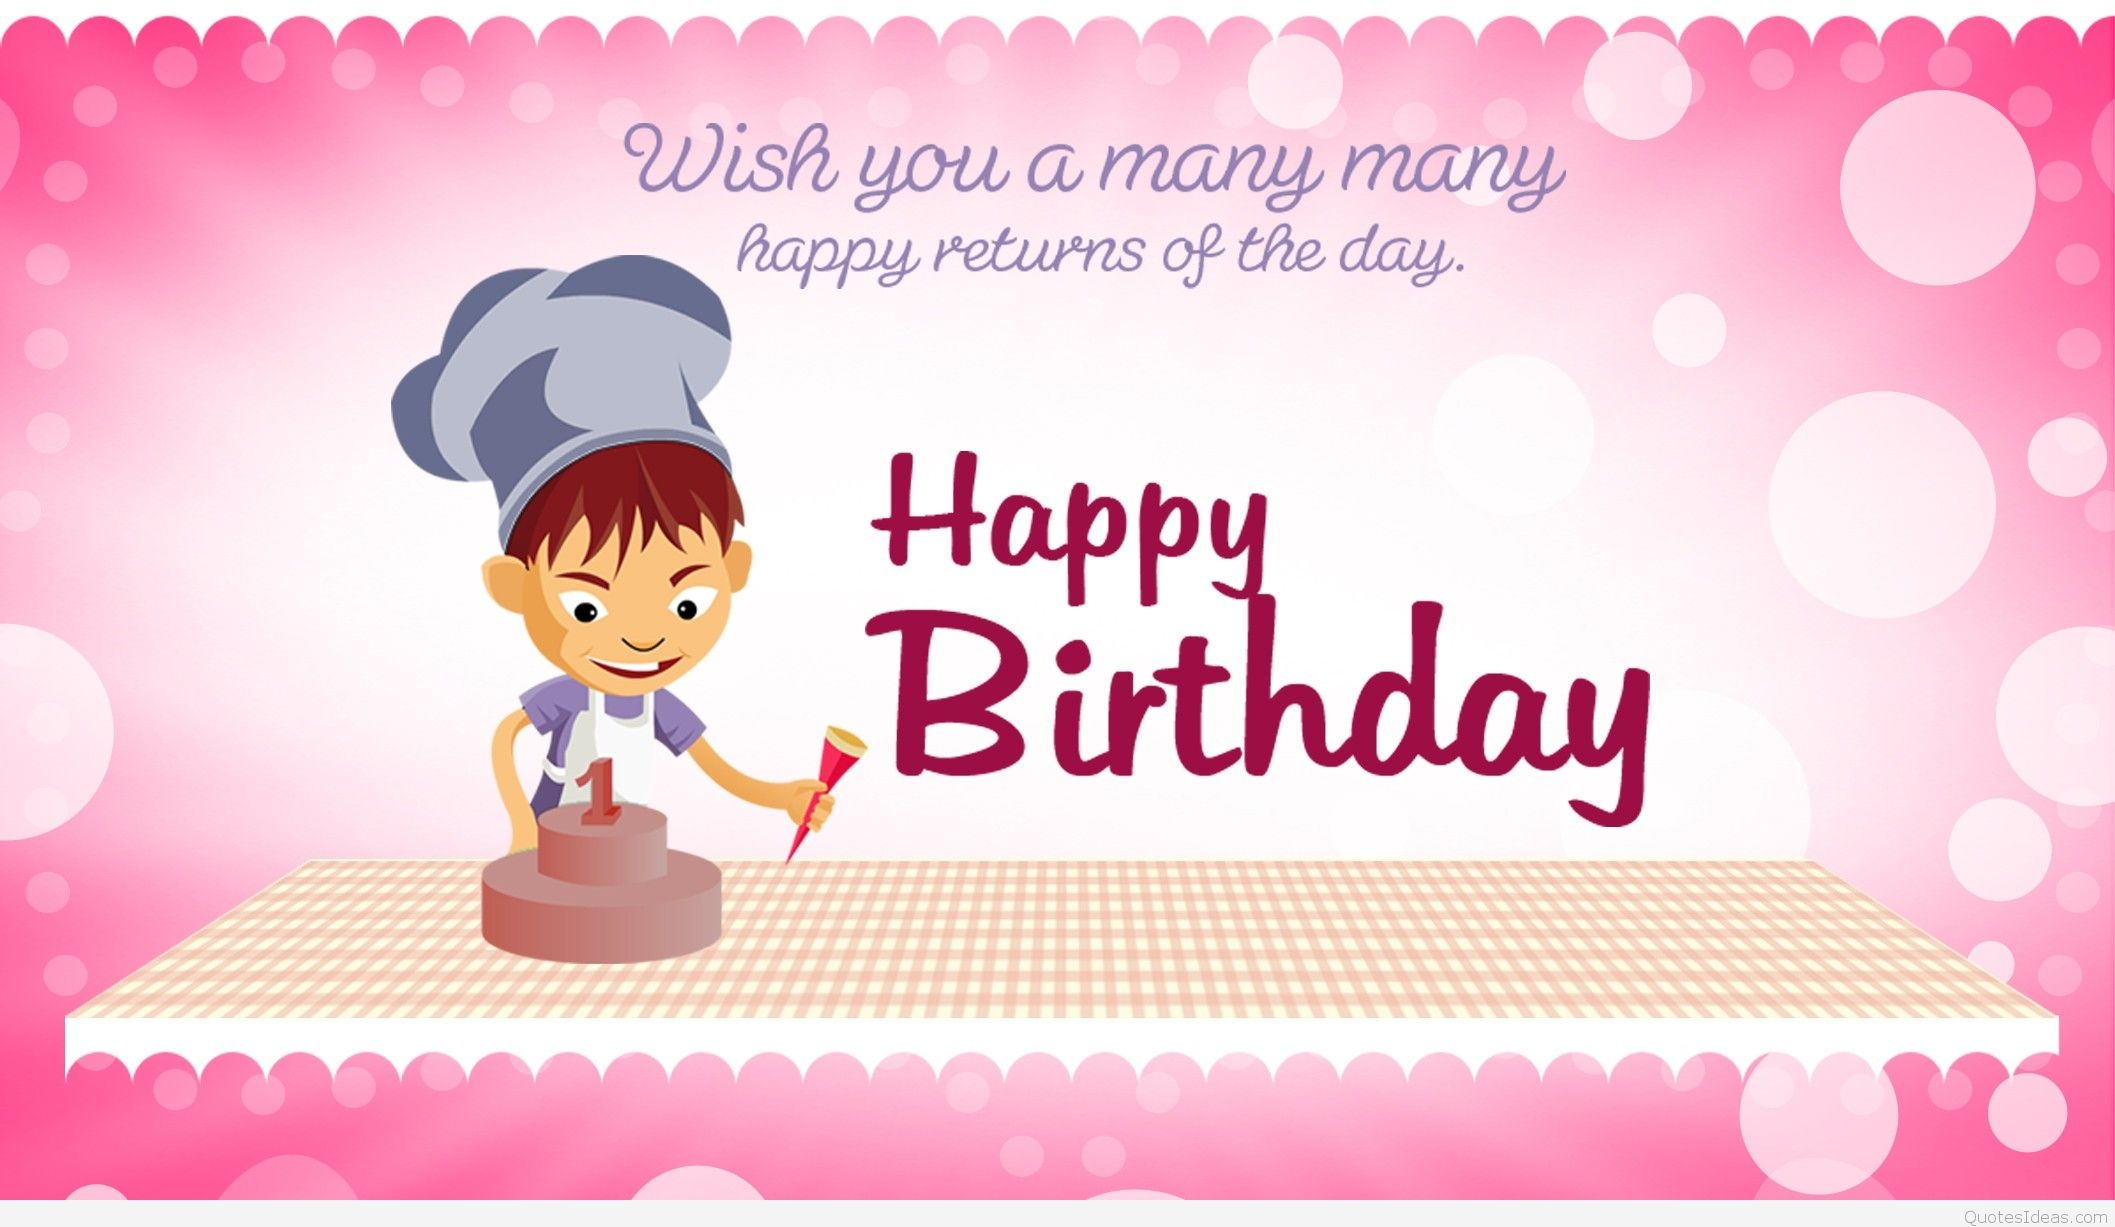 birthday wishes wallpapers with quotes ; beautiful-new-happy-birthday-wishes-for-kids-with-quotes-wallpapers-with-regard-to-happy-birthday-quotes-for-kids-design